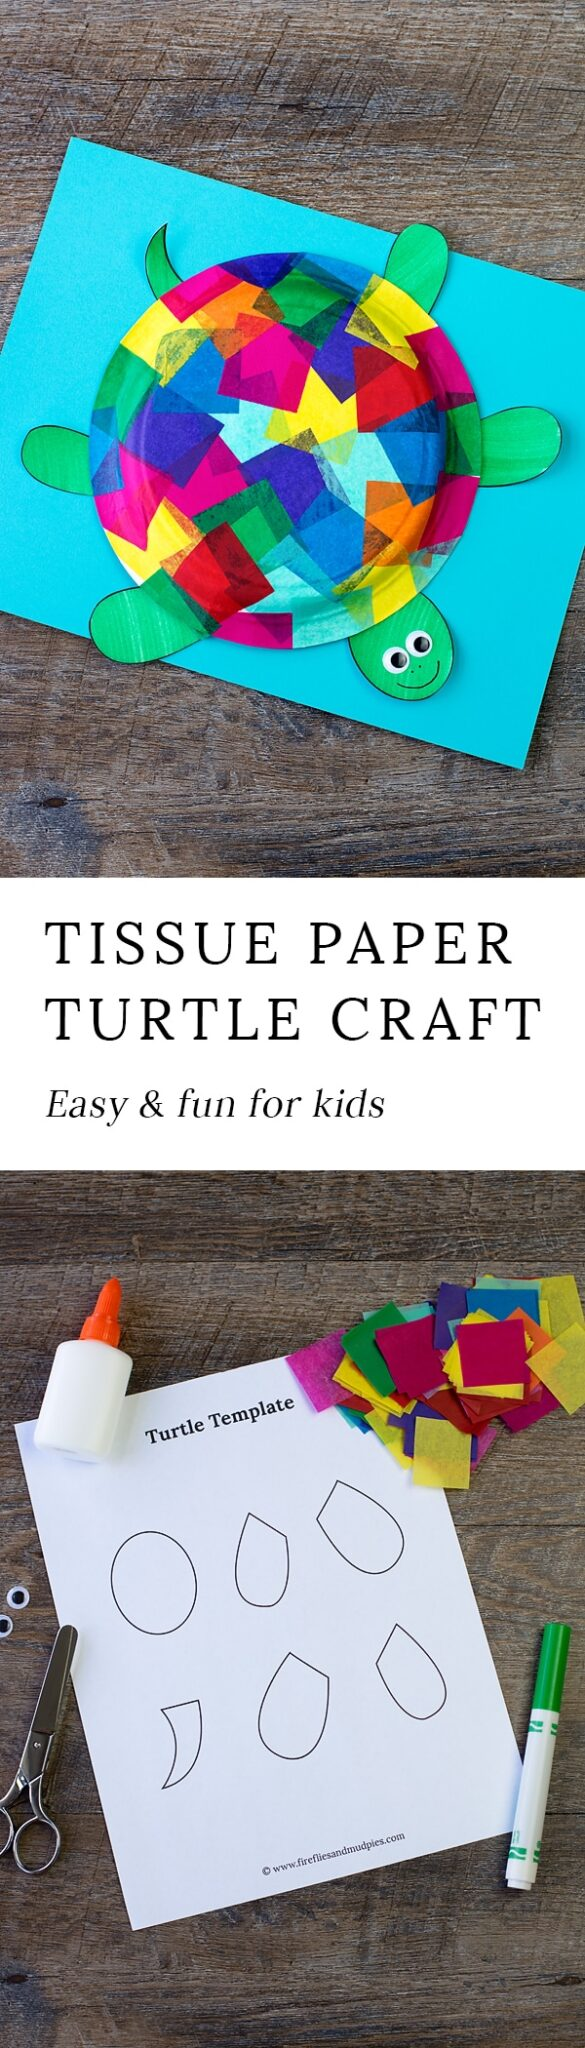 tissue paper and paper plate turtle craft